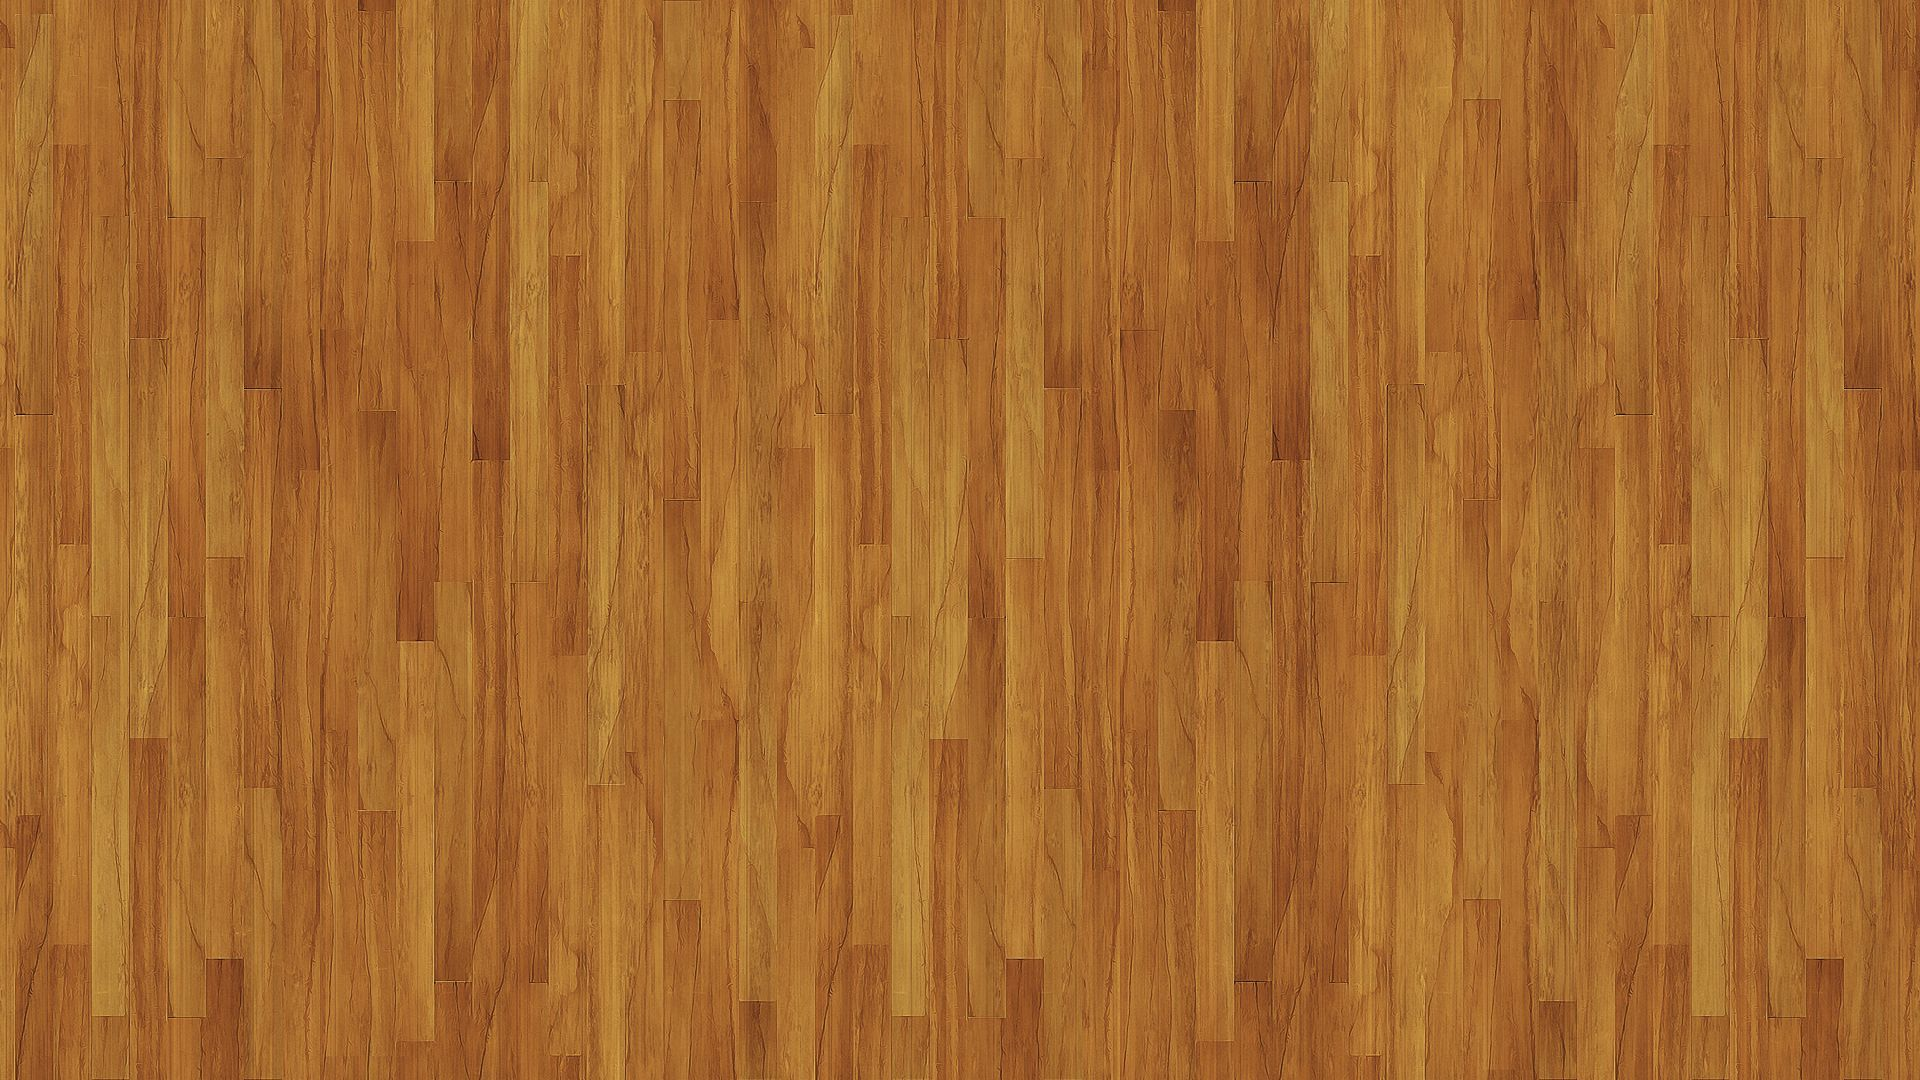 Wood floor wallpaper wallpapersafari for Timber flooring